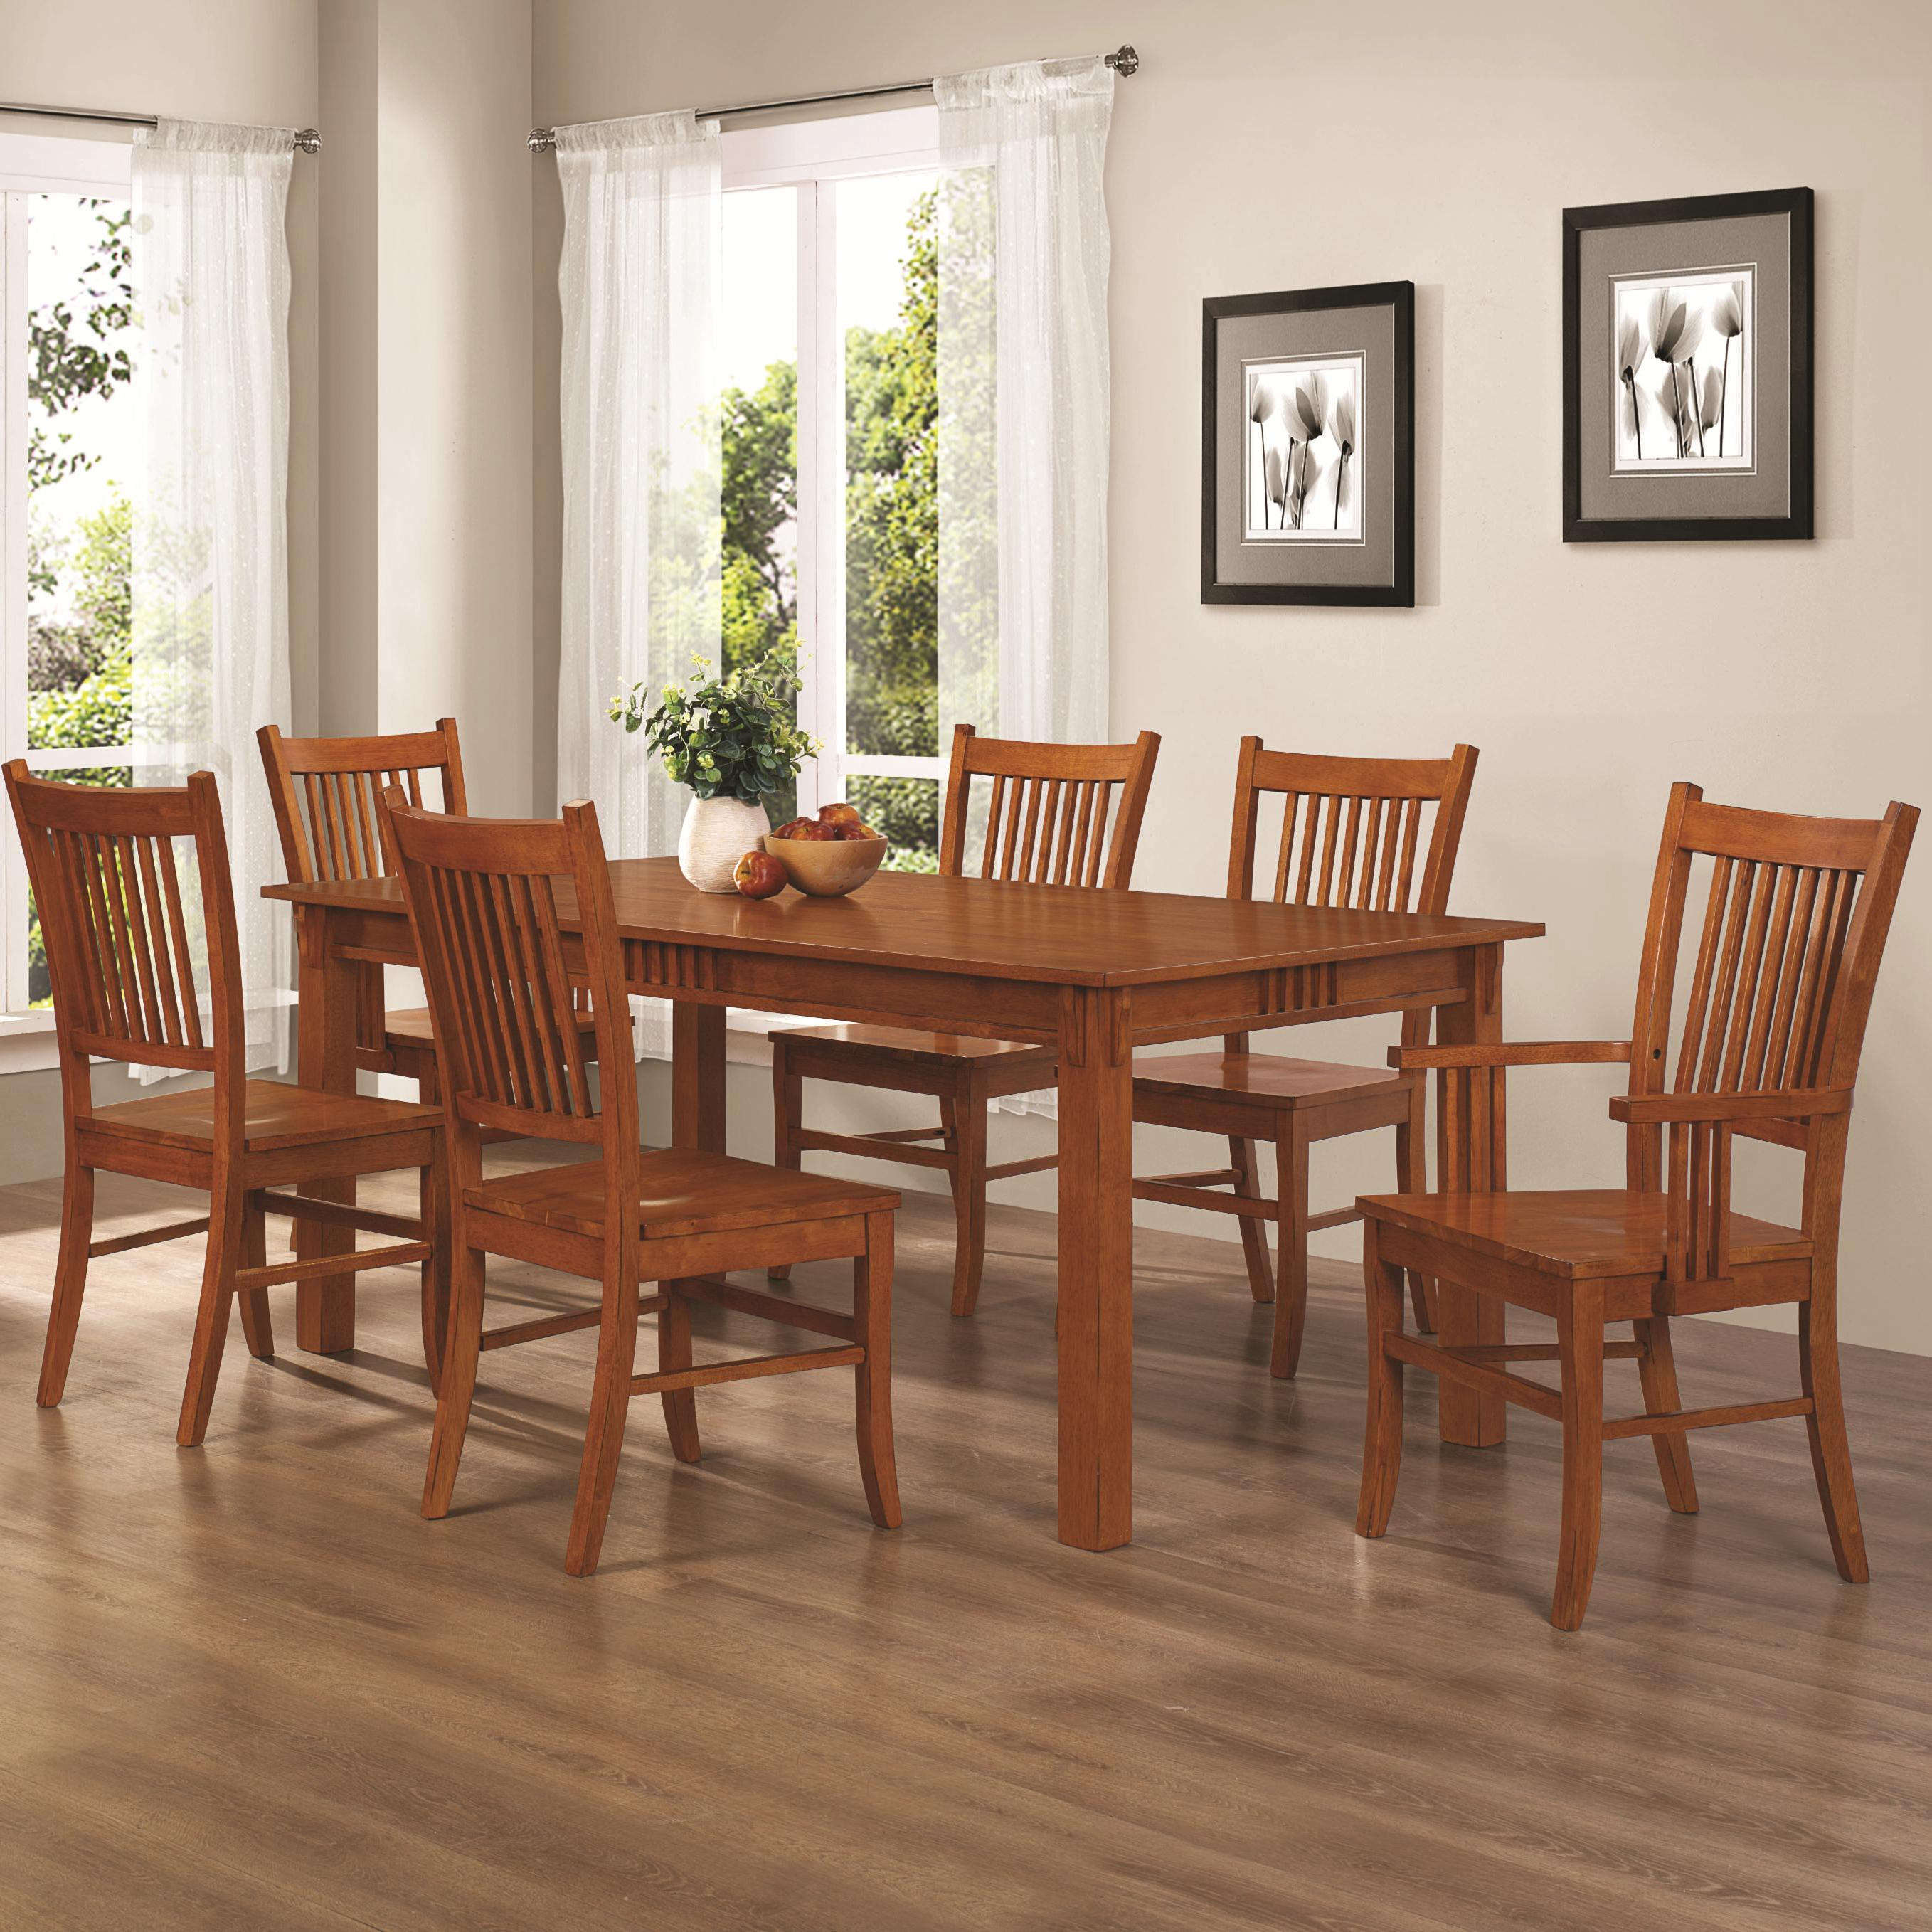 Coaster 100621 Marbrisa Table And Caster Chairs Curley